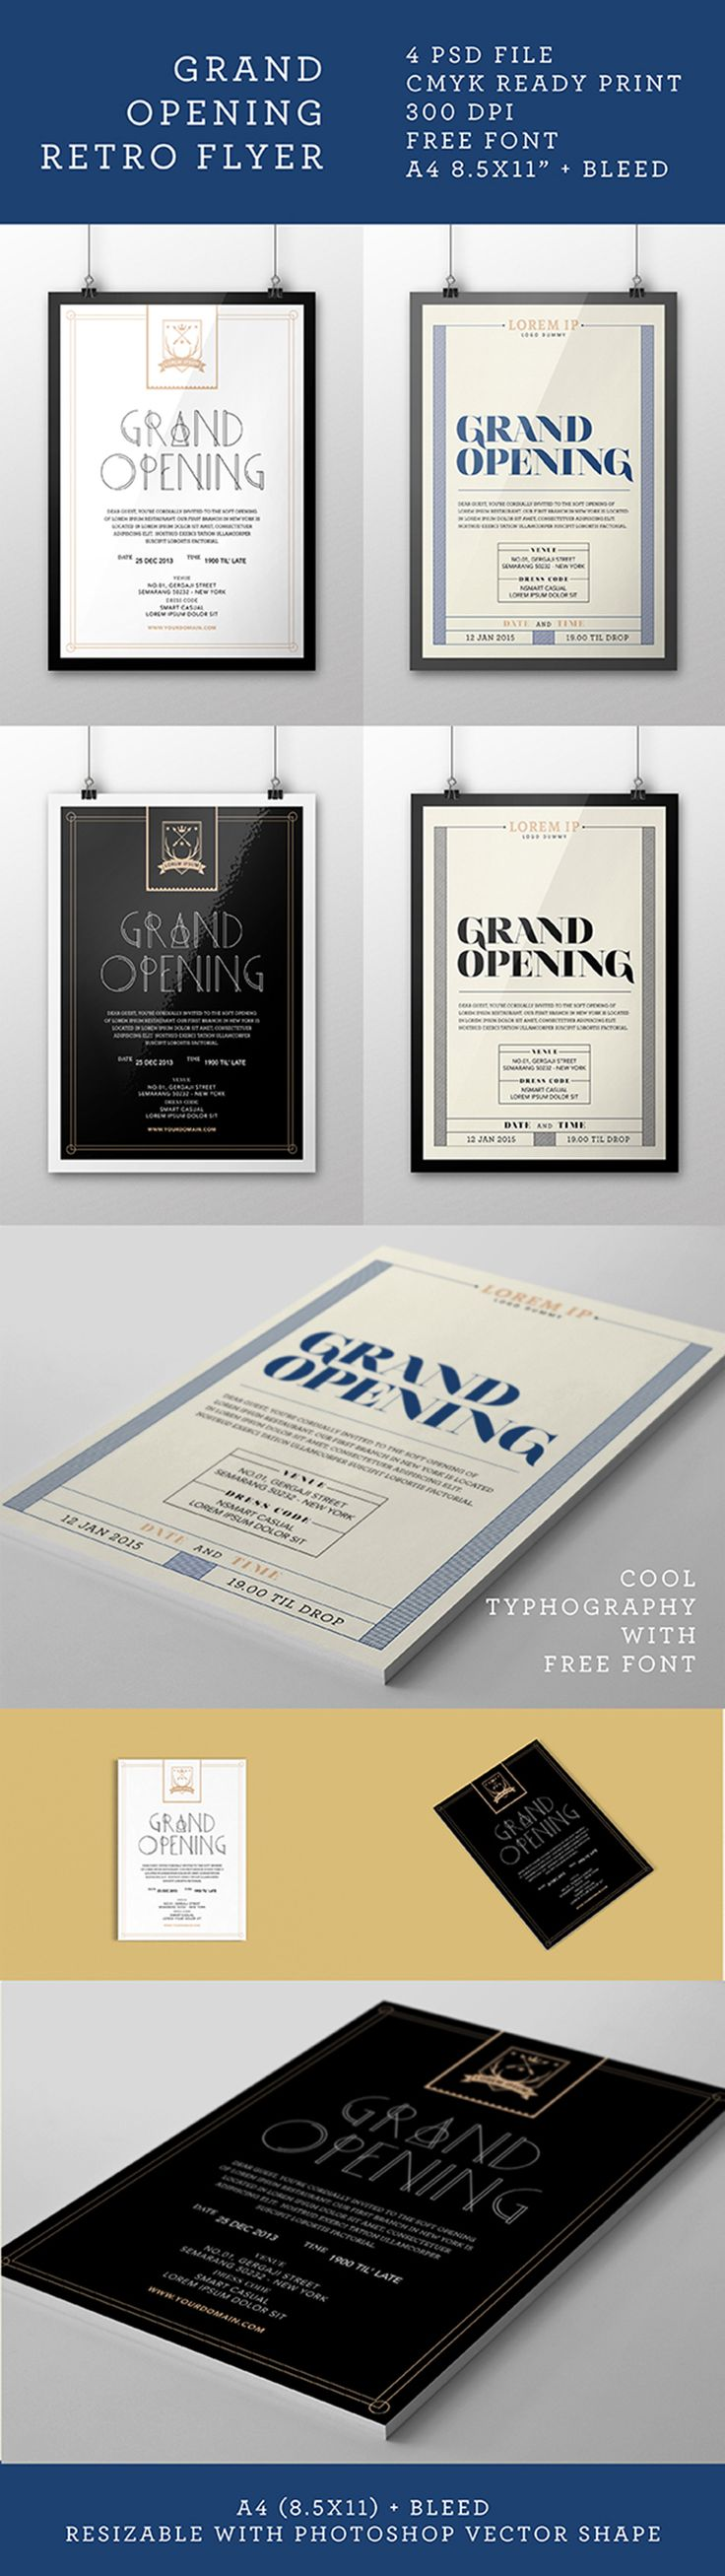 7 best Grand opening images on Pinterest | Invitations, Grand ...